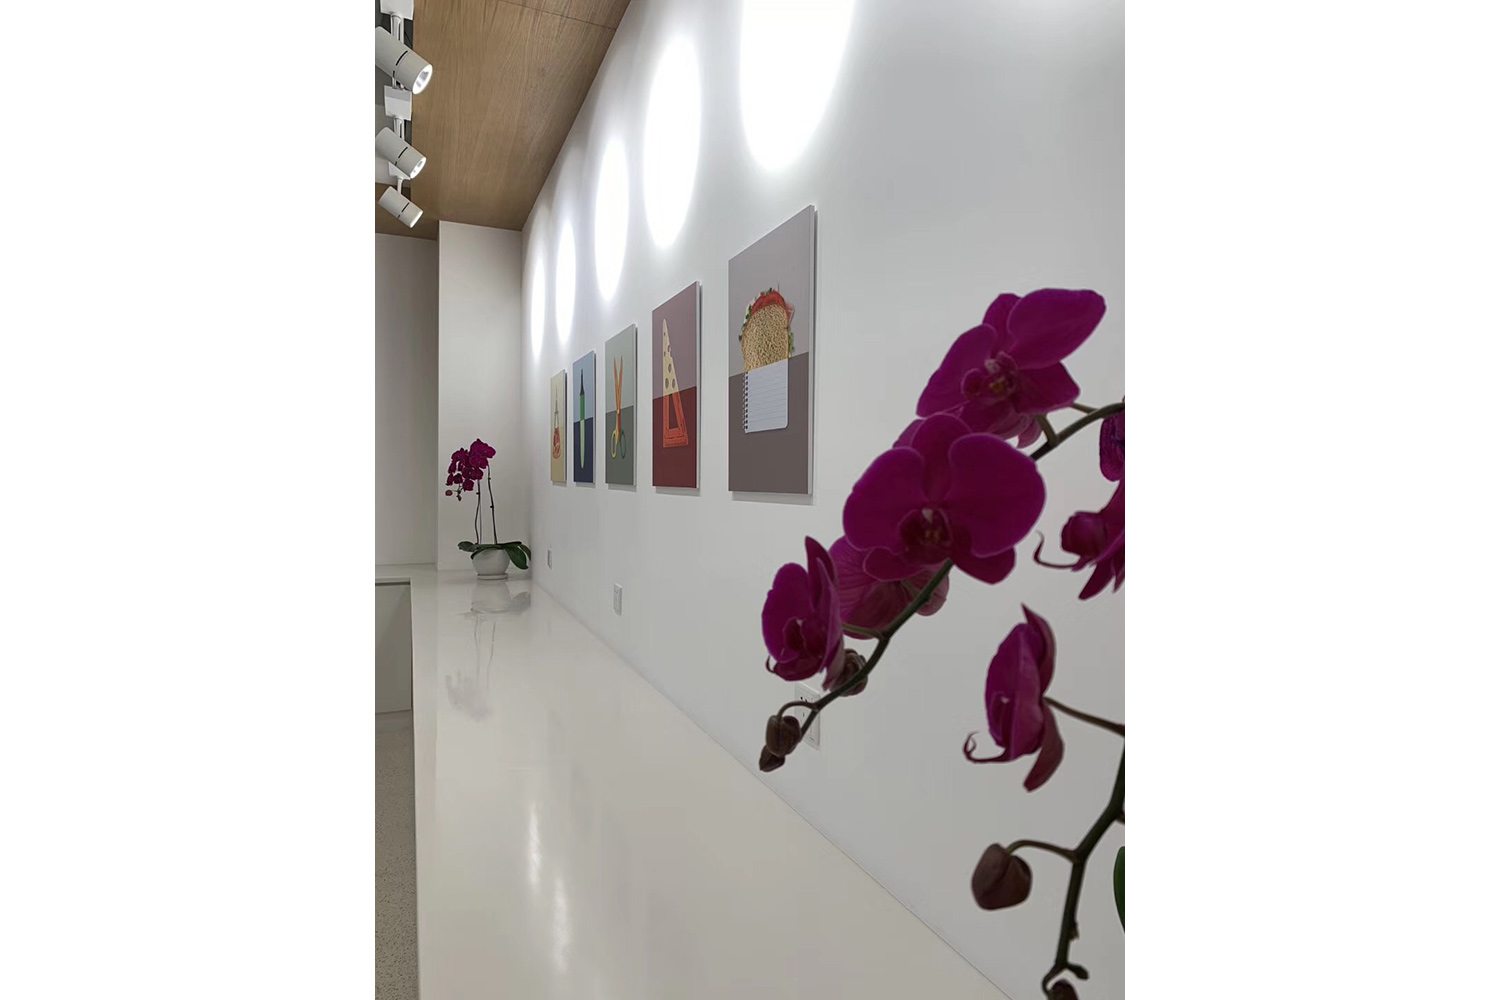 Avenues: The World School in Shenzhen, China consists of two locations in Shenzhen's Nanshan District. WSDG provided acoustic and A/V systems consulting as well as construction supervision for the two locations. Corridor.